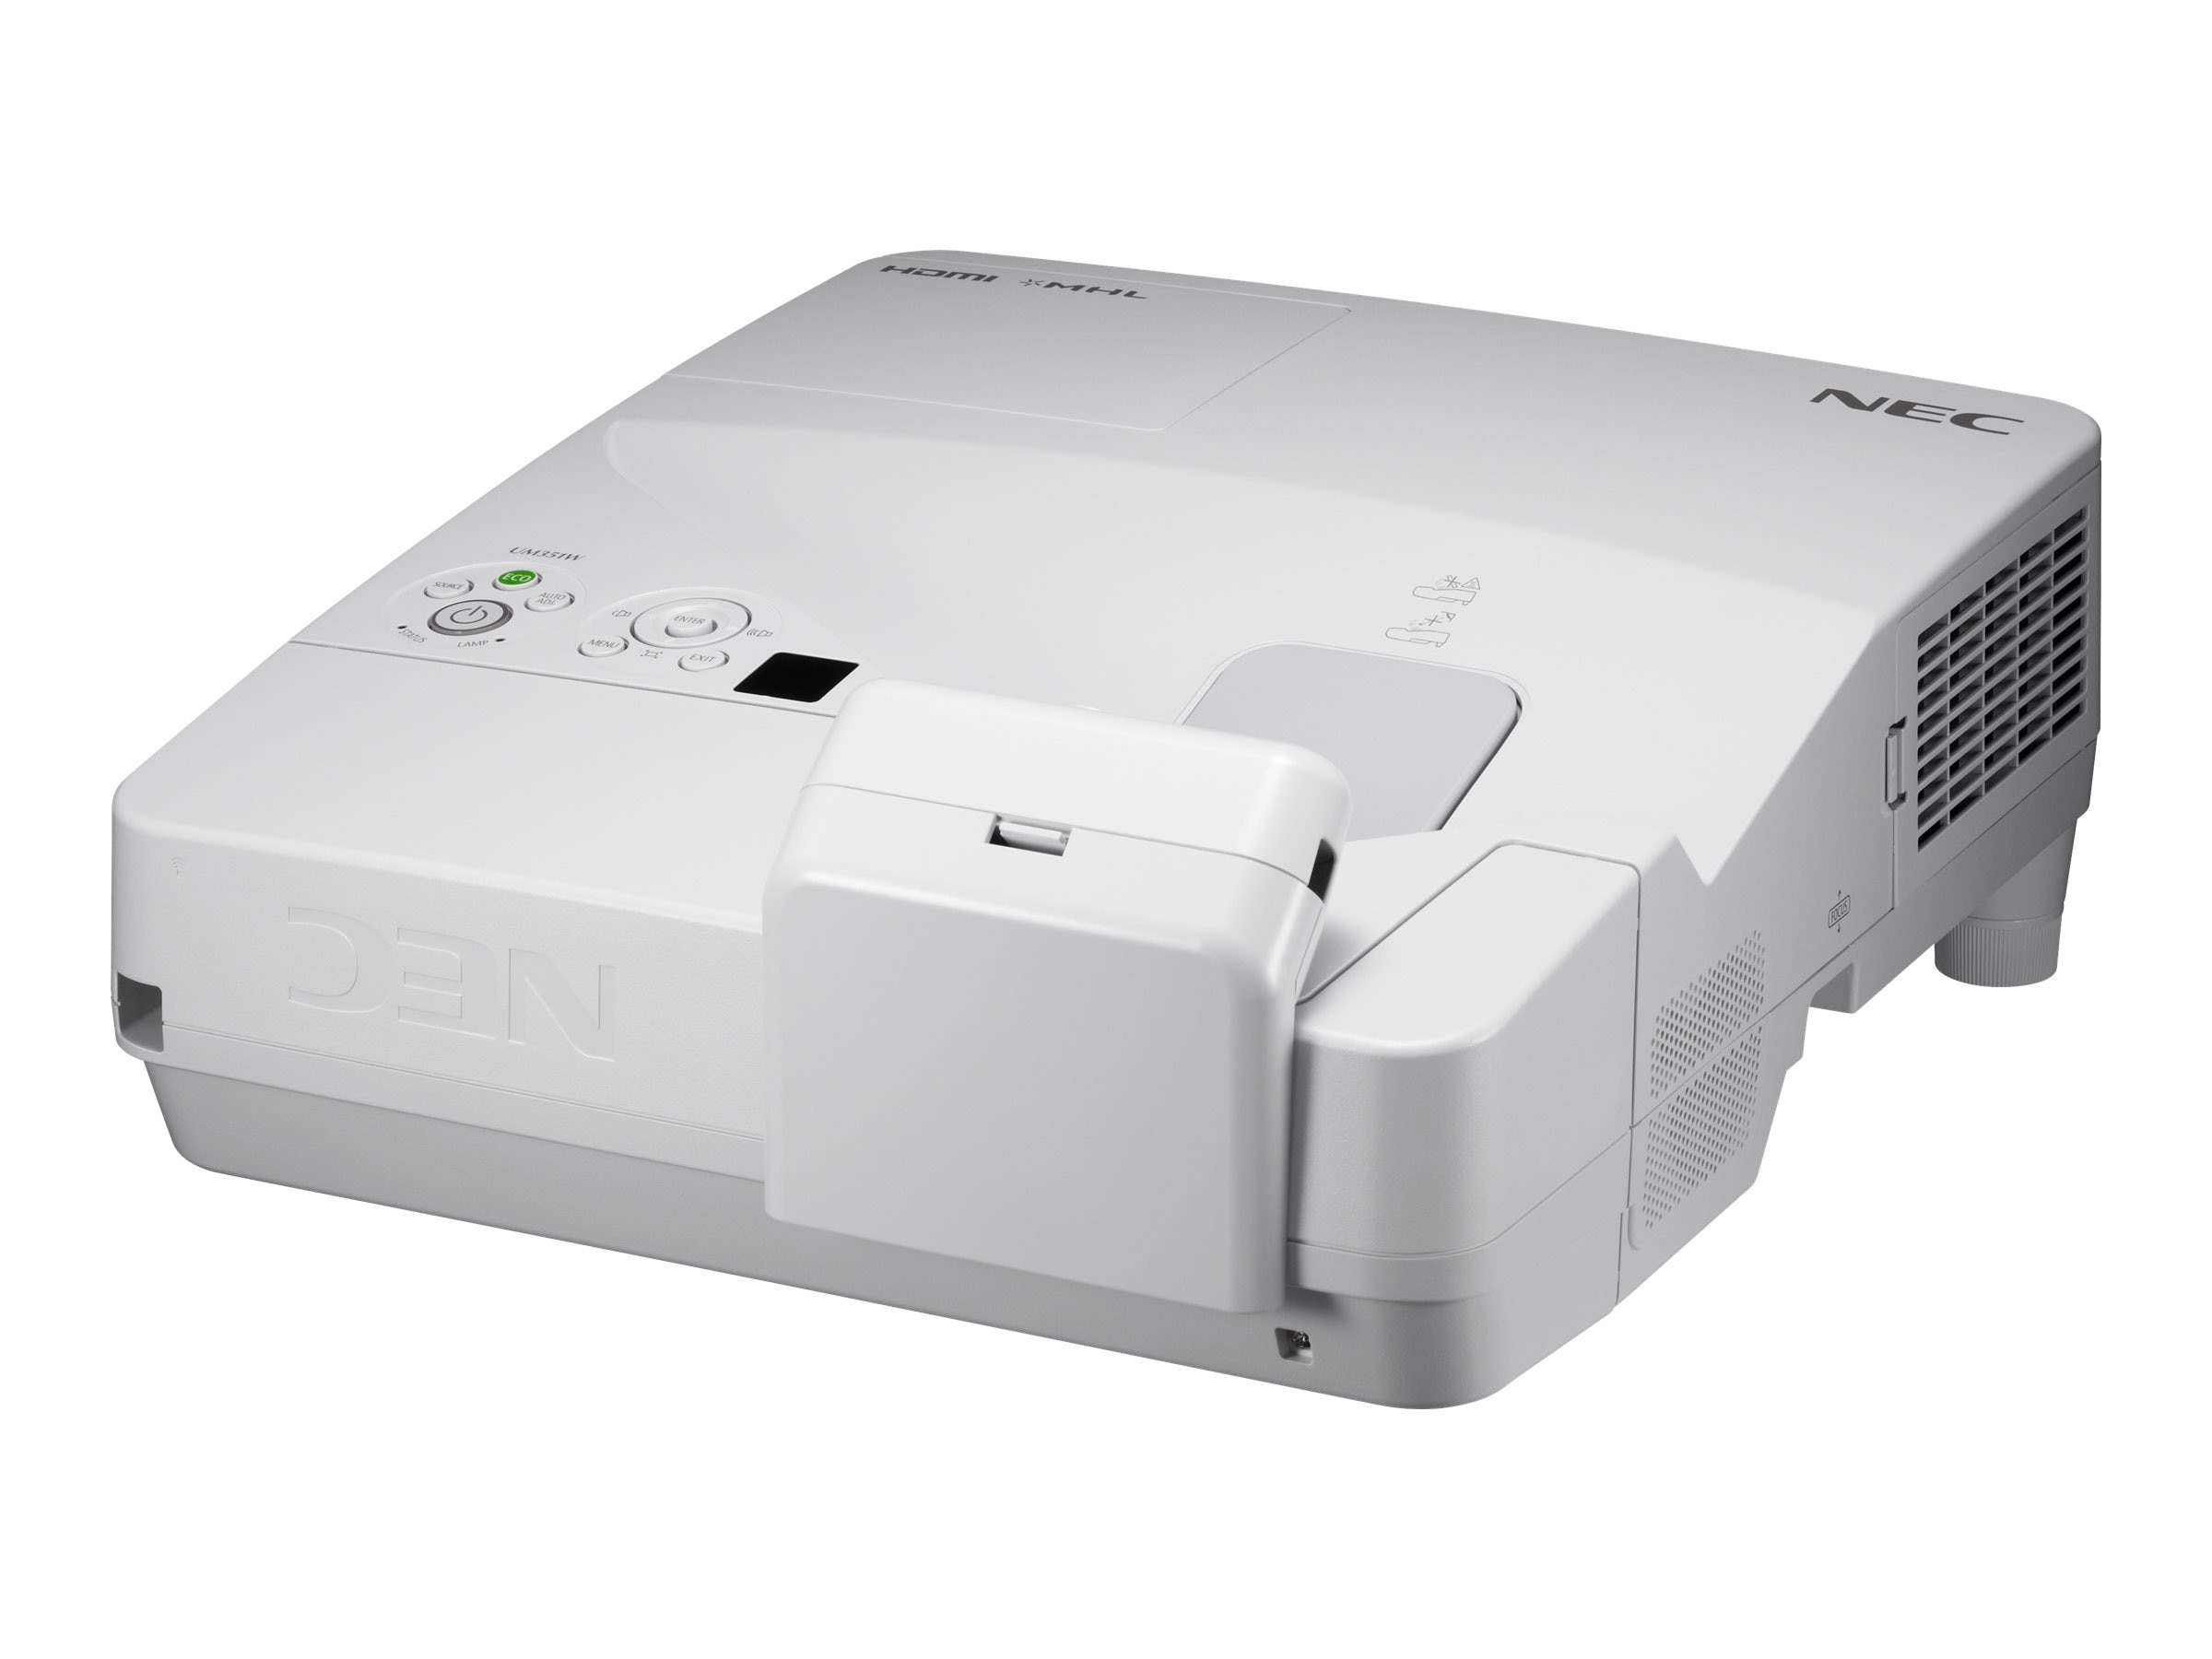 NEC UM351W Ultra Short Throw LCD Interactive Projector, 3500 Lumens, White with Touch Module, Wall Mount, NP-UM351WI-TM